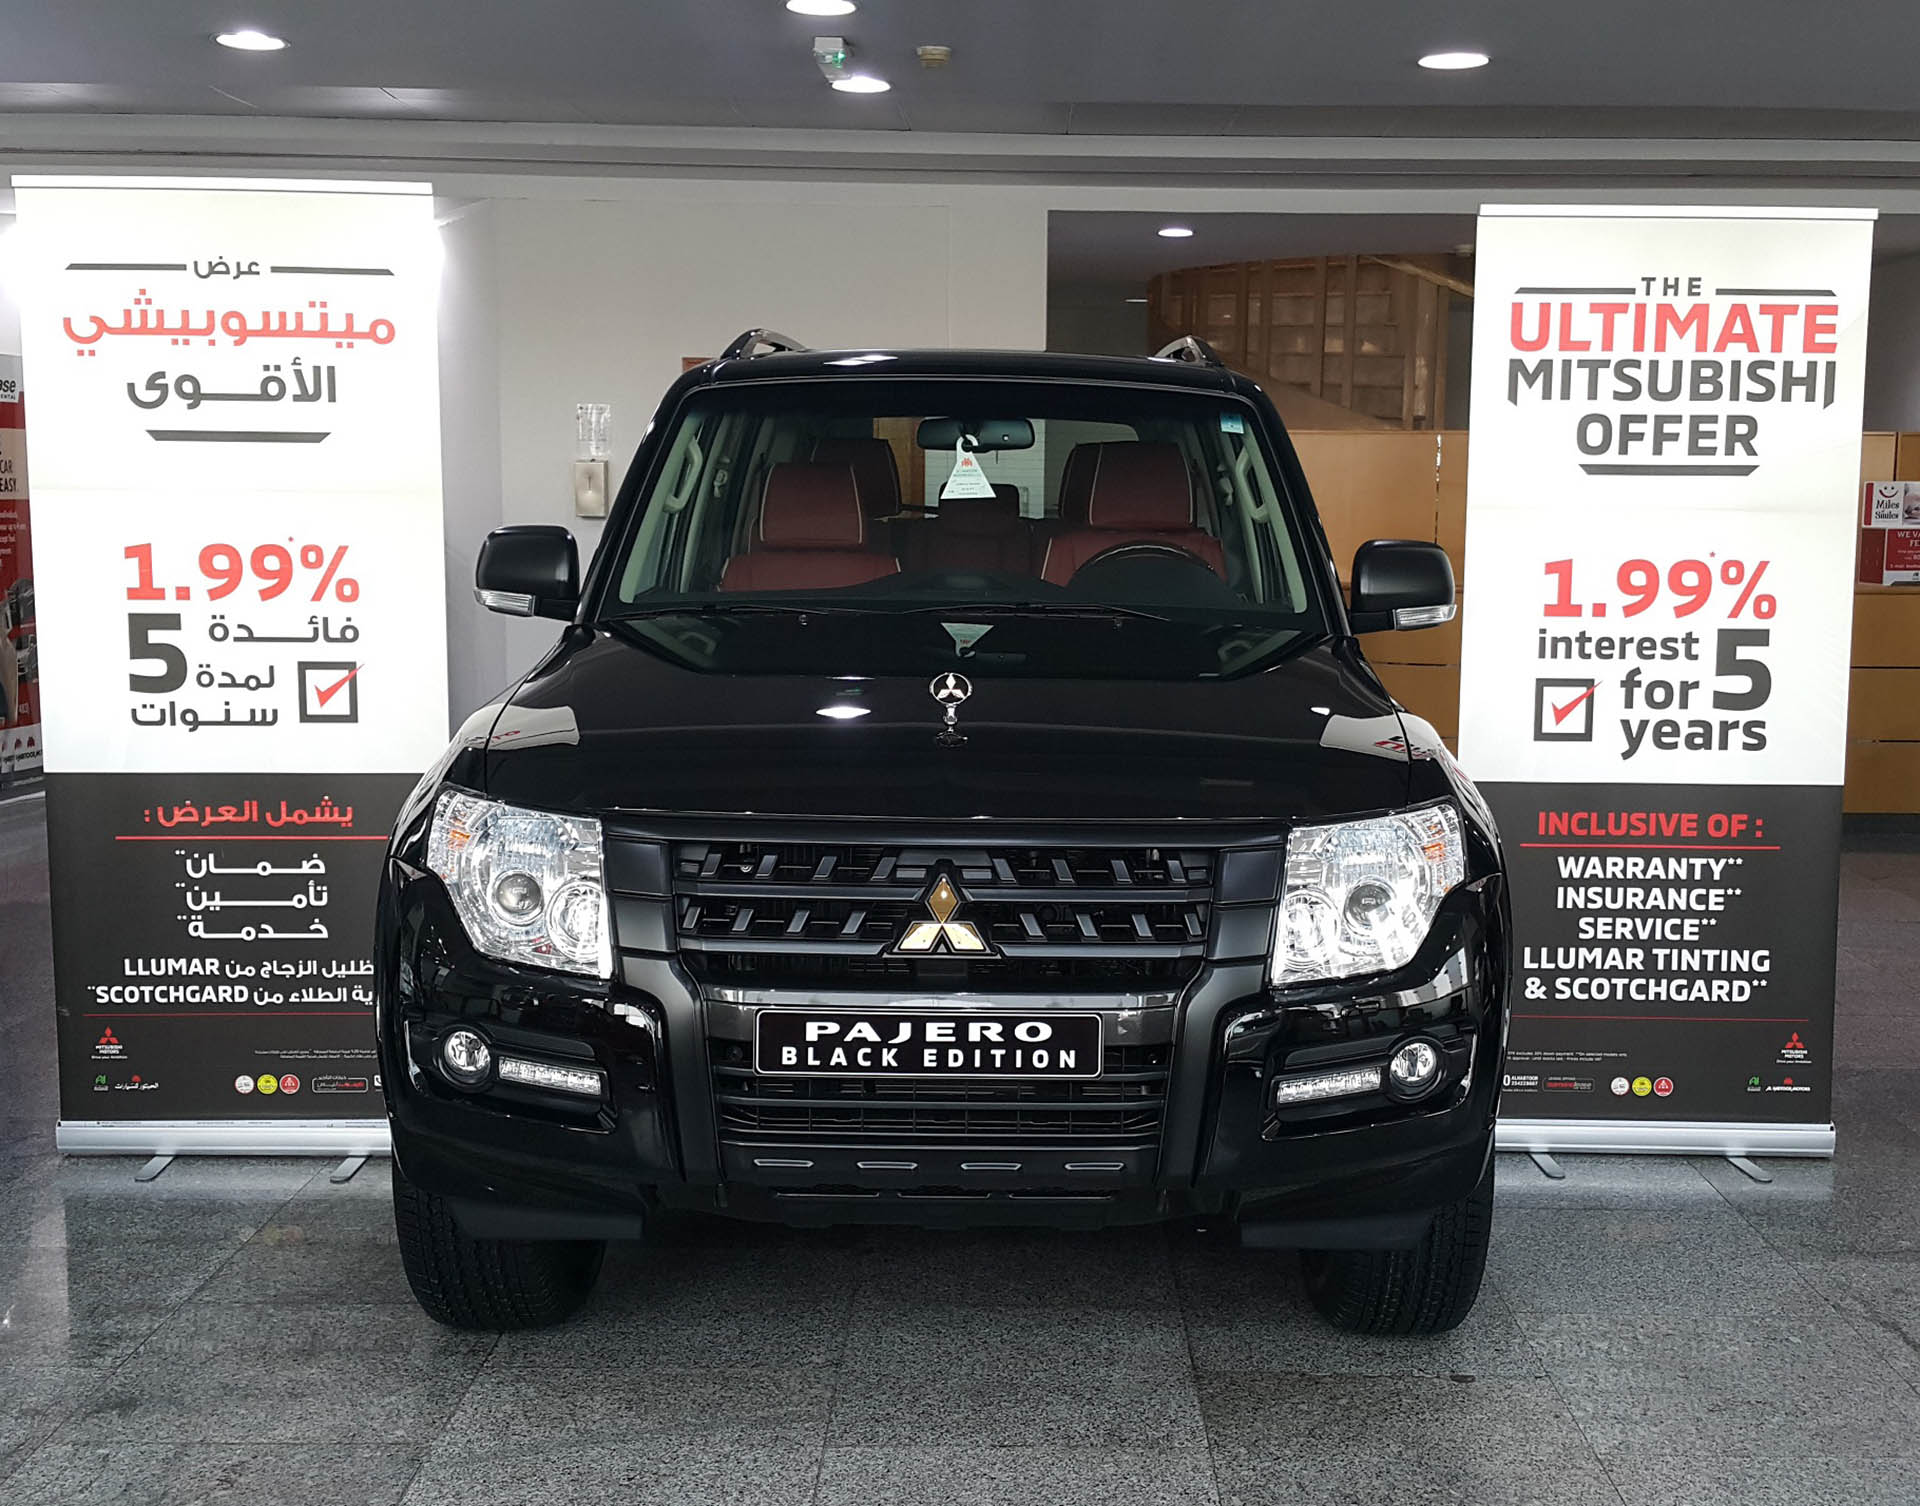 The Ultimate Mitsubishi Offer - Arab Motor World